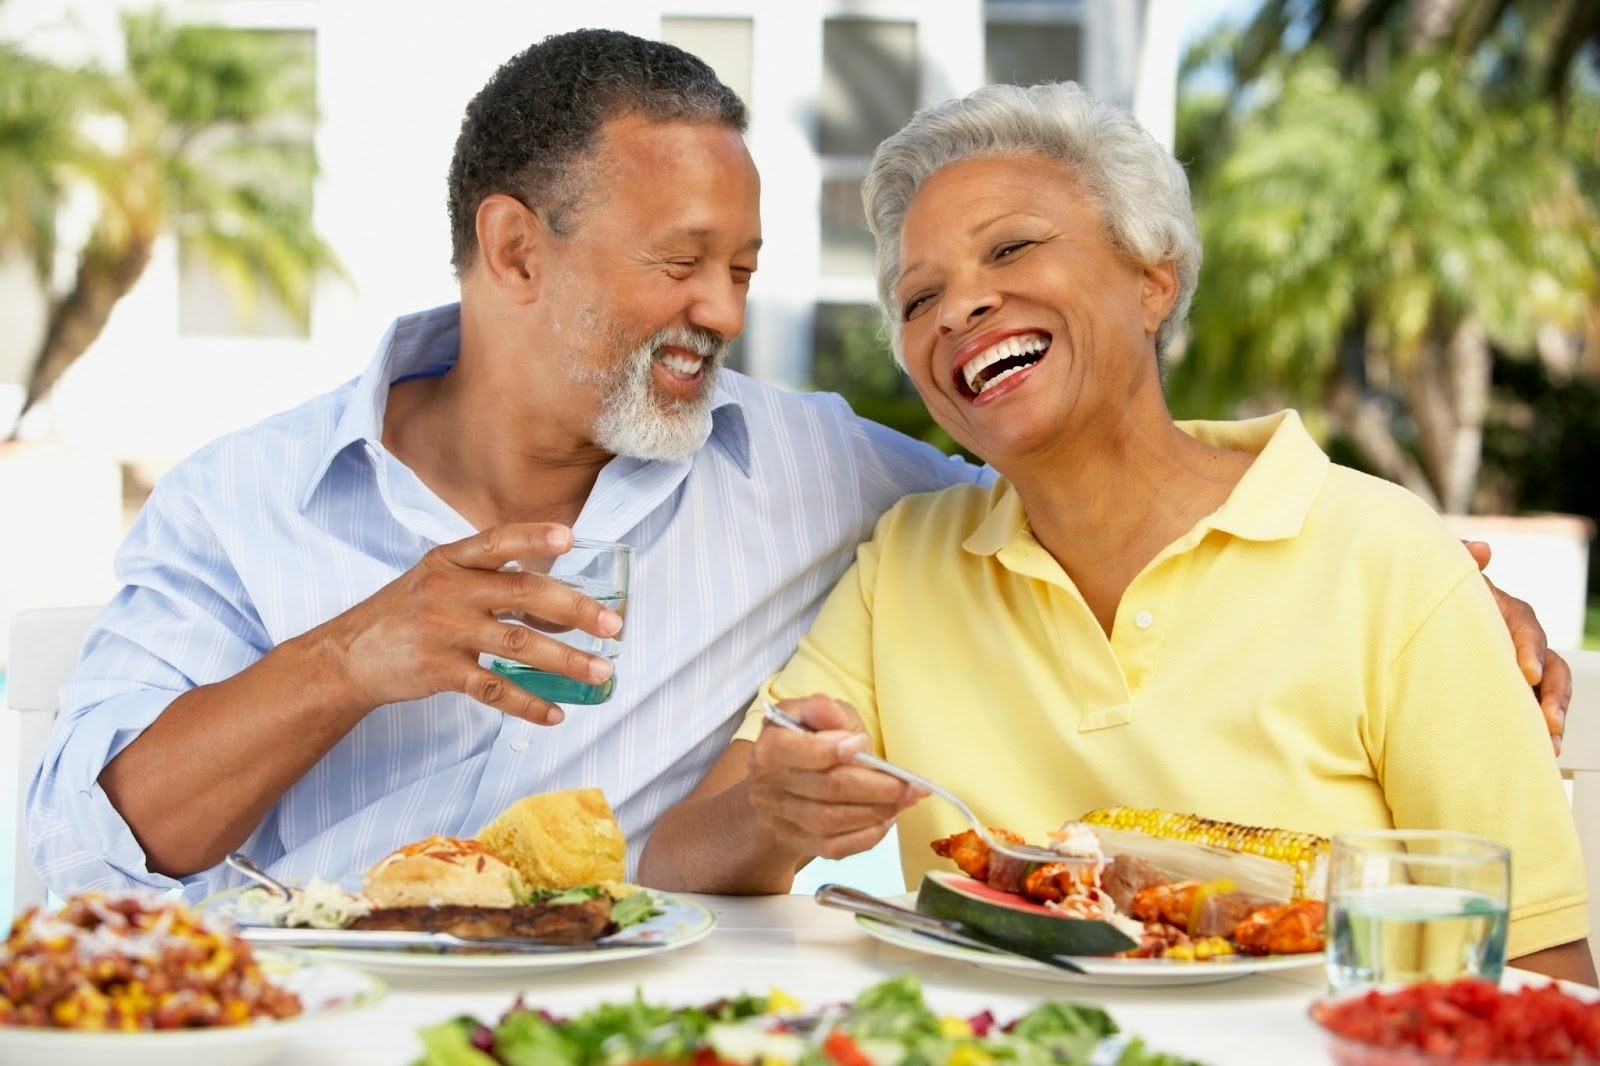 kinta senior personals Popular interactive dating community for active seniors huge list of members  completely free membership photo personals, romance newsletter, advice from .